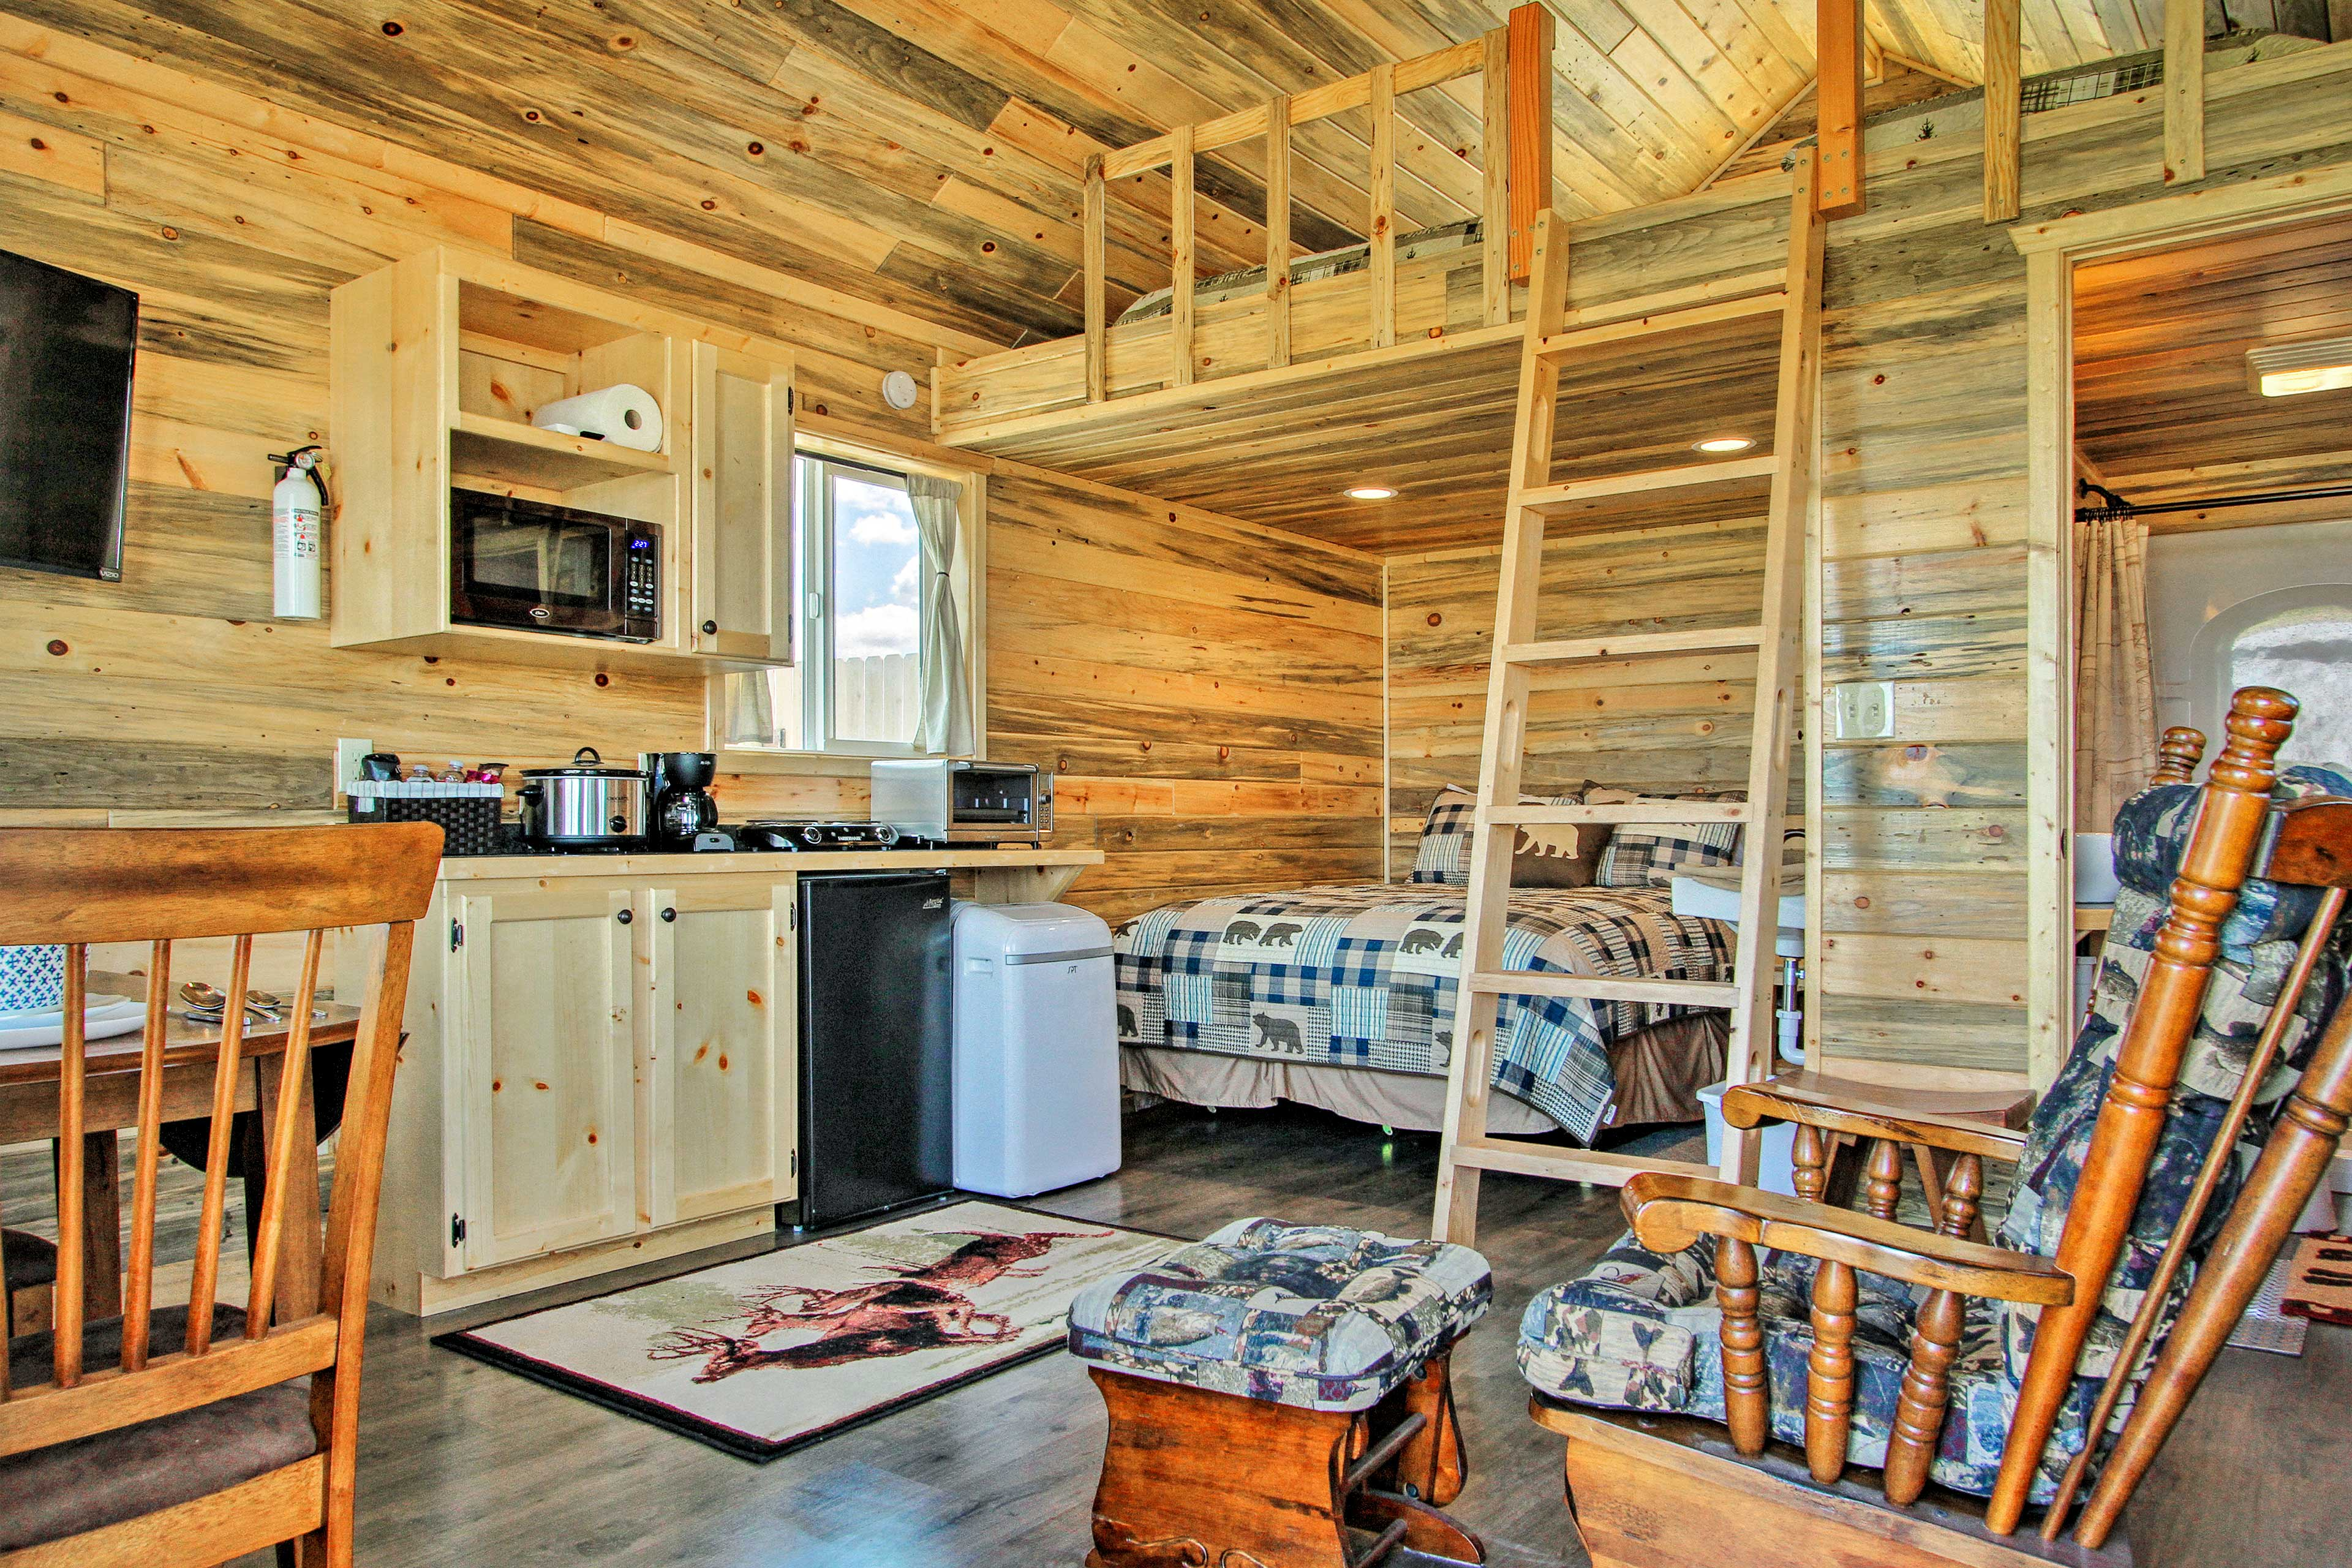 The 250 square feet feel more spacious with vaulted ceilings and a loft!